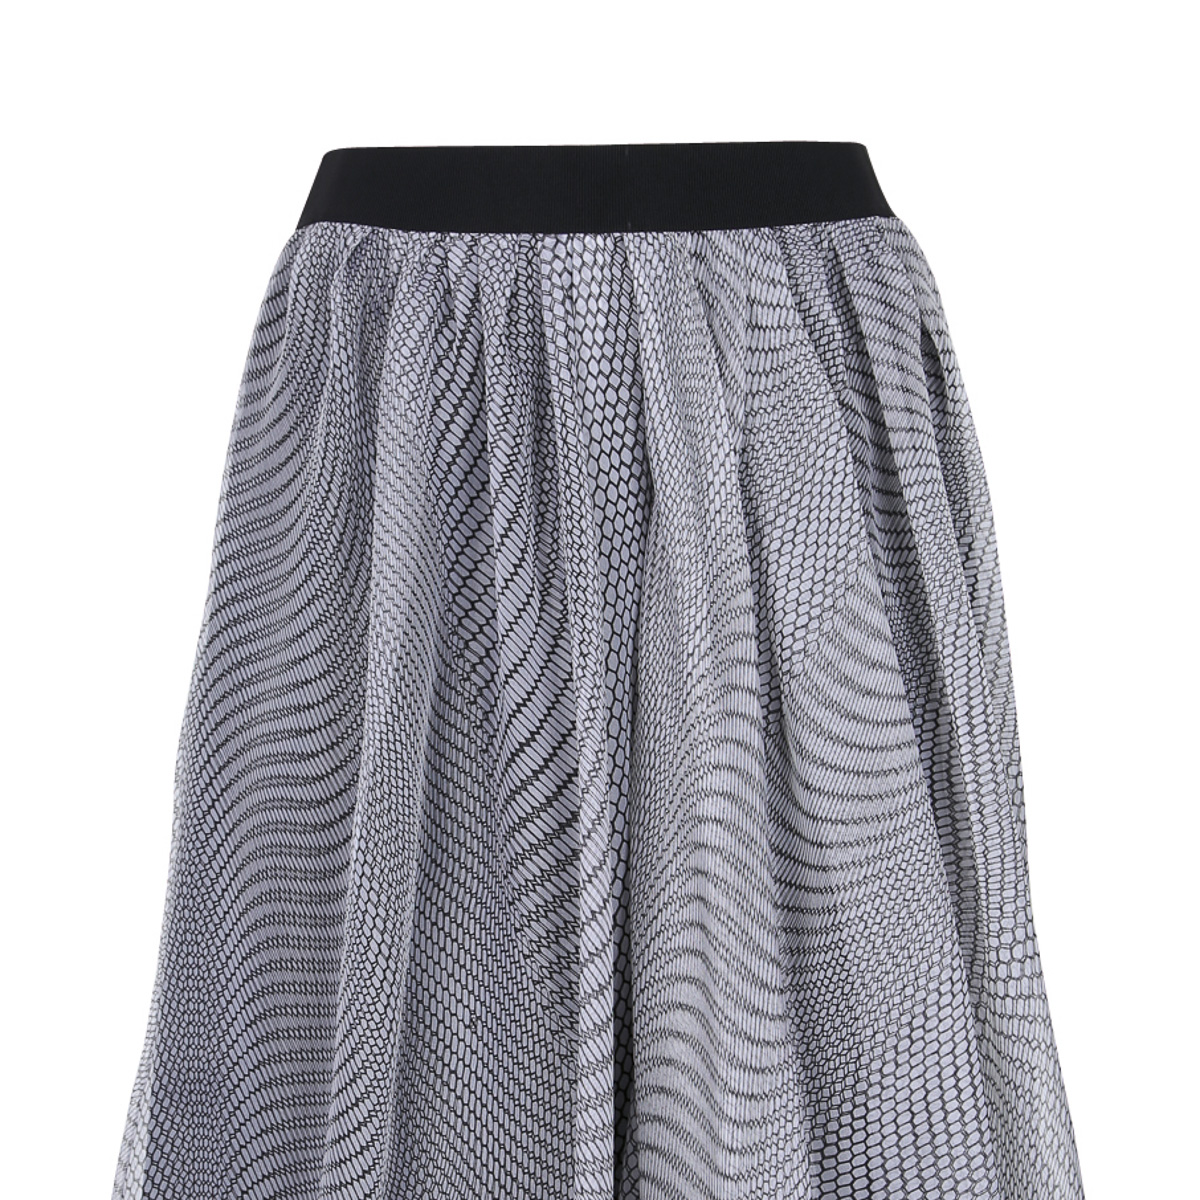 DOROTHEE SCHUMACHER_SPRING SUMMER 2015_WEIGHTLESS MESH_SKIRT_BLACK AND WHITE-3